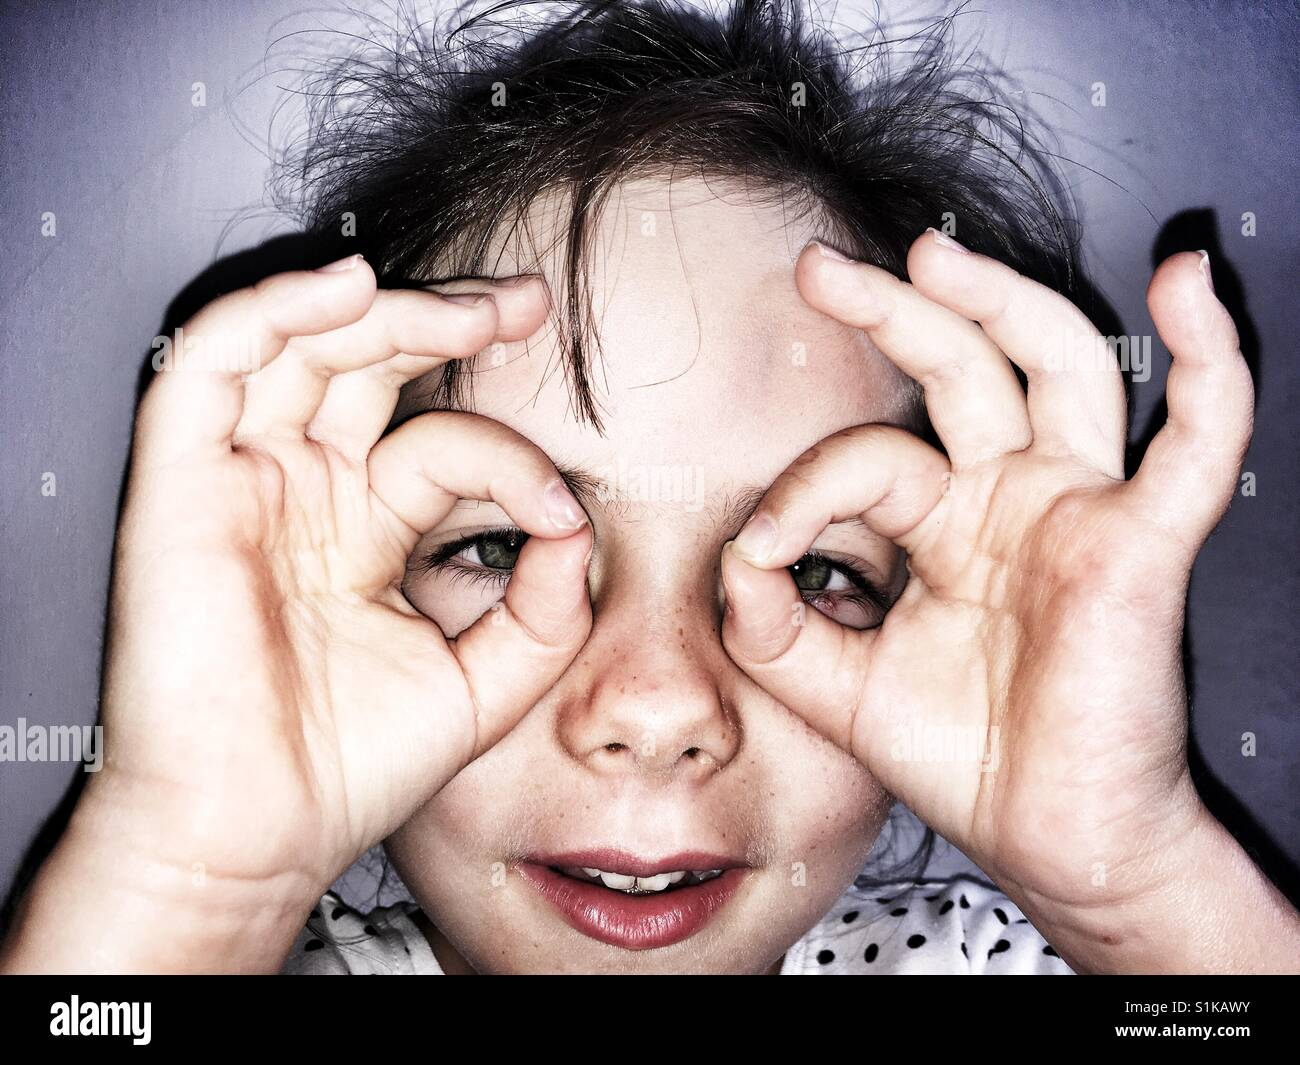 Making a spectacle of oneself - Stock Image